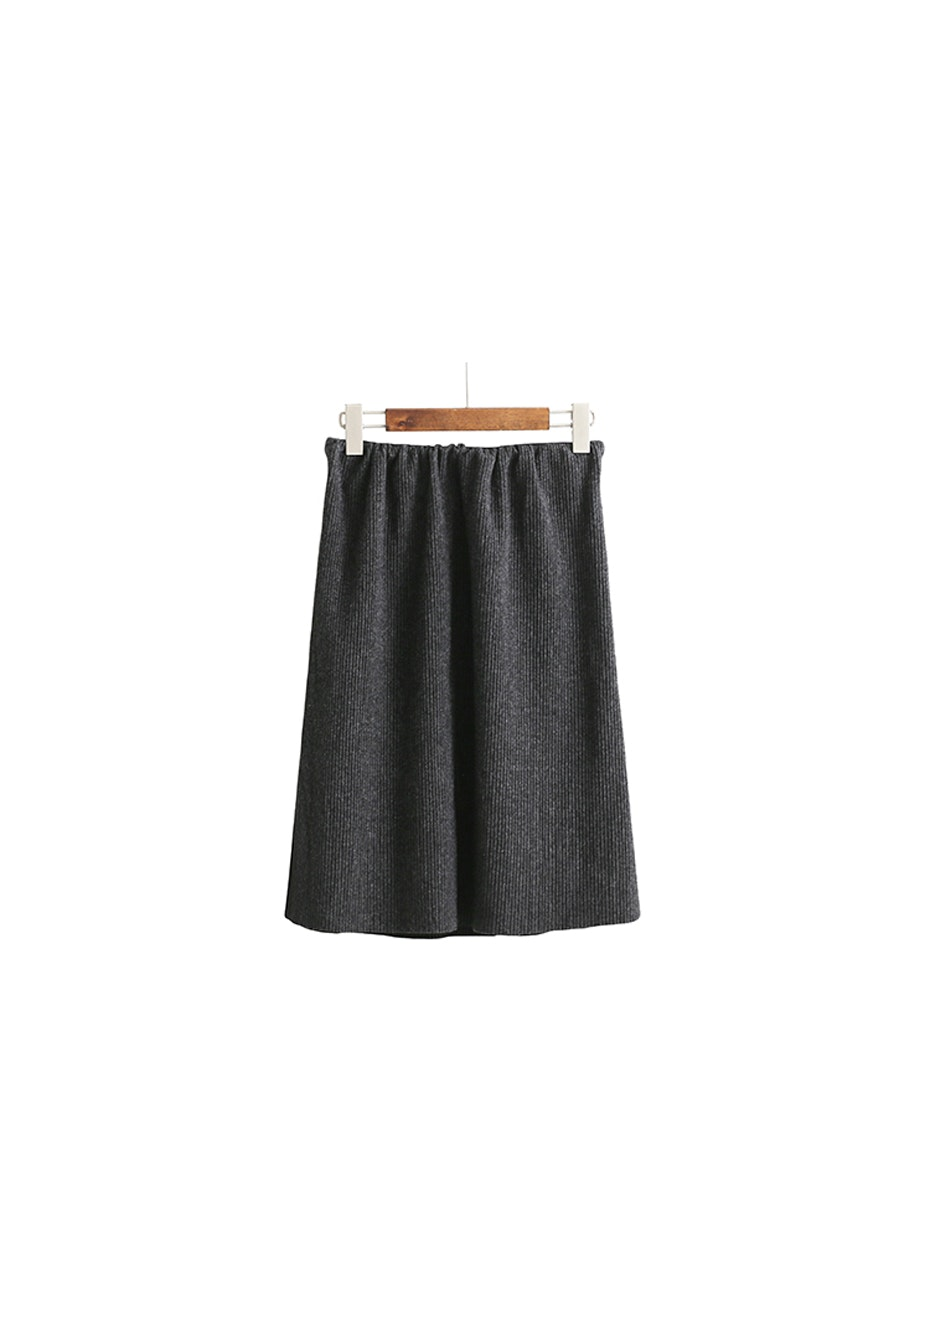 Dillan Knit Skirt  - Grey